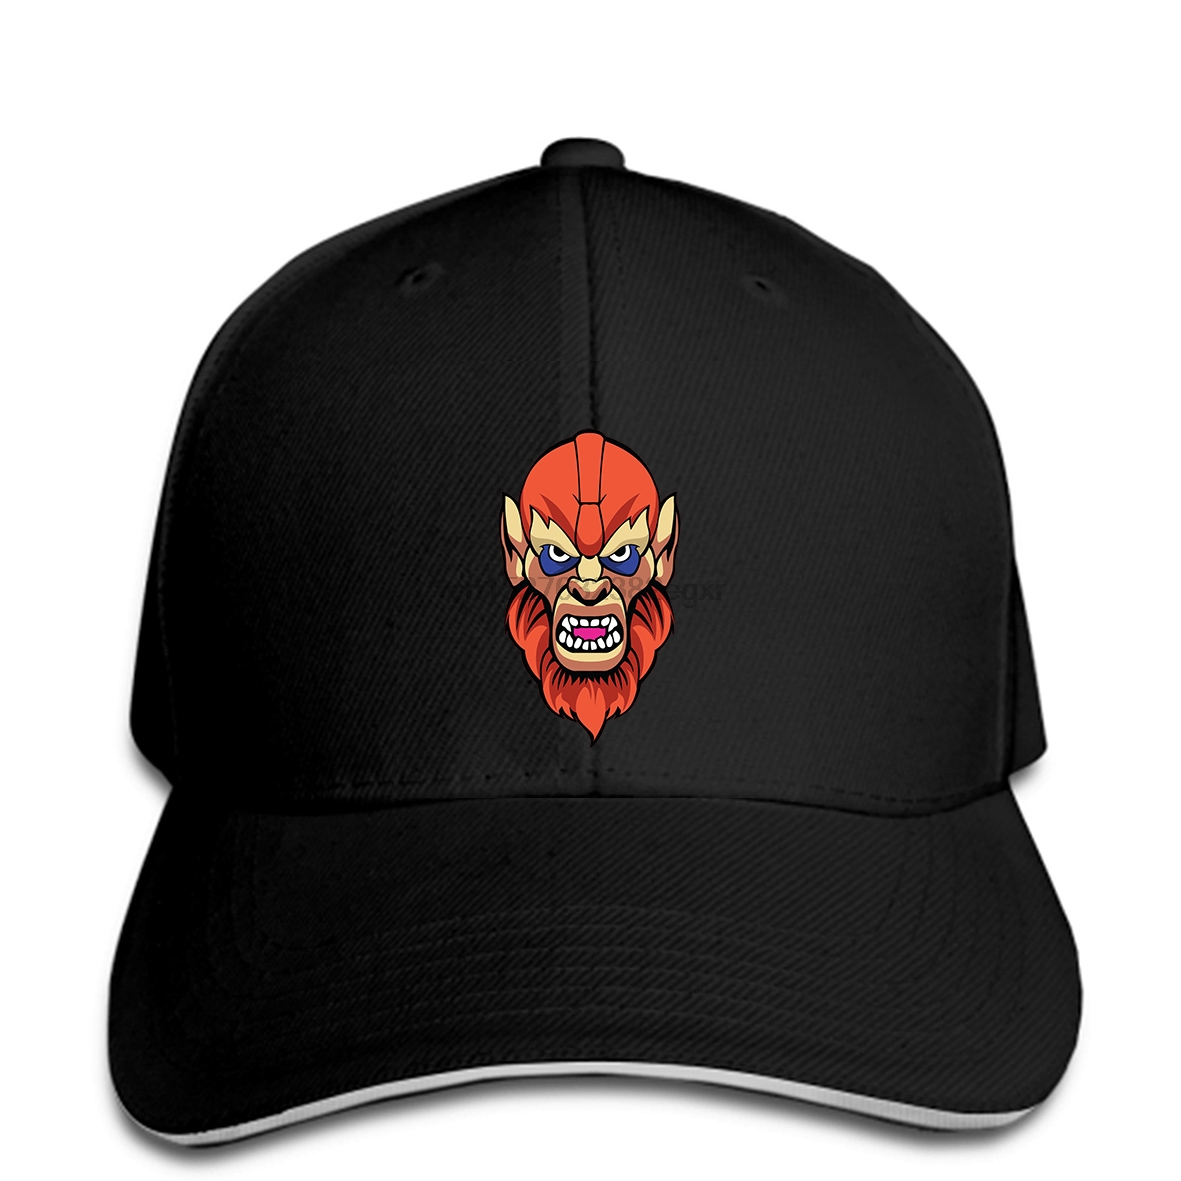 Men's Hats Apparel Accessories Steady Printed Men Baseball Cap New Style Savage Henchman Skeletor Women Baseball Cap